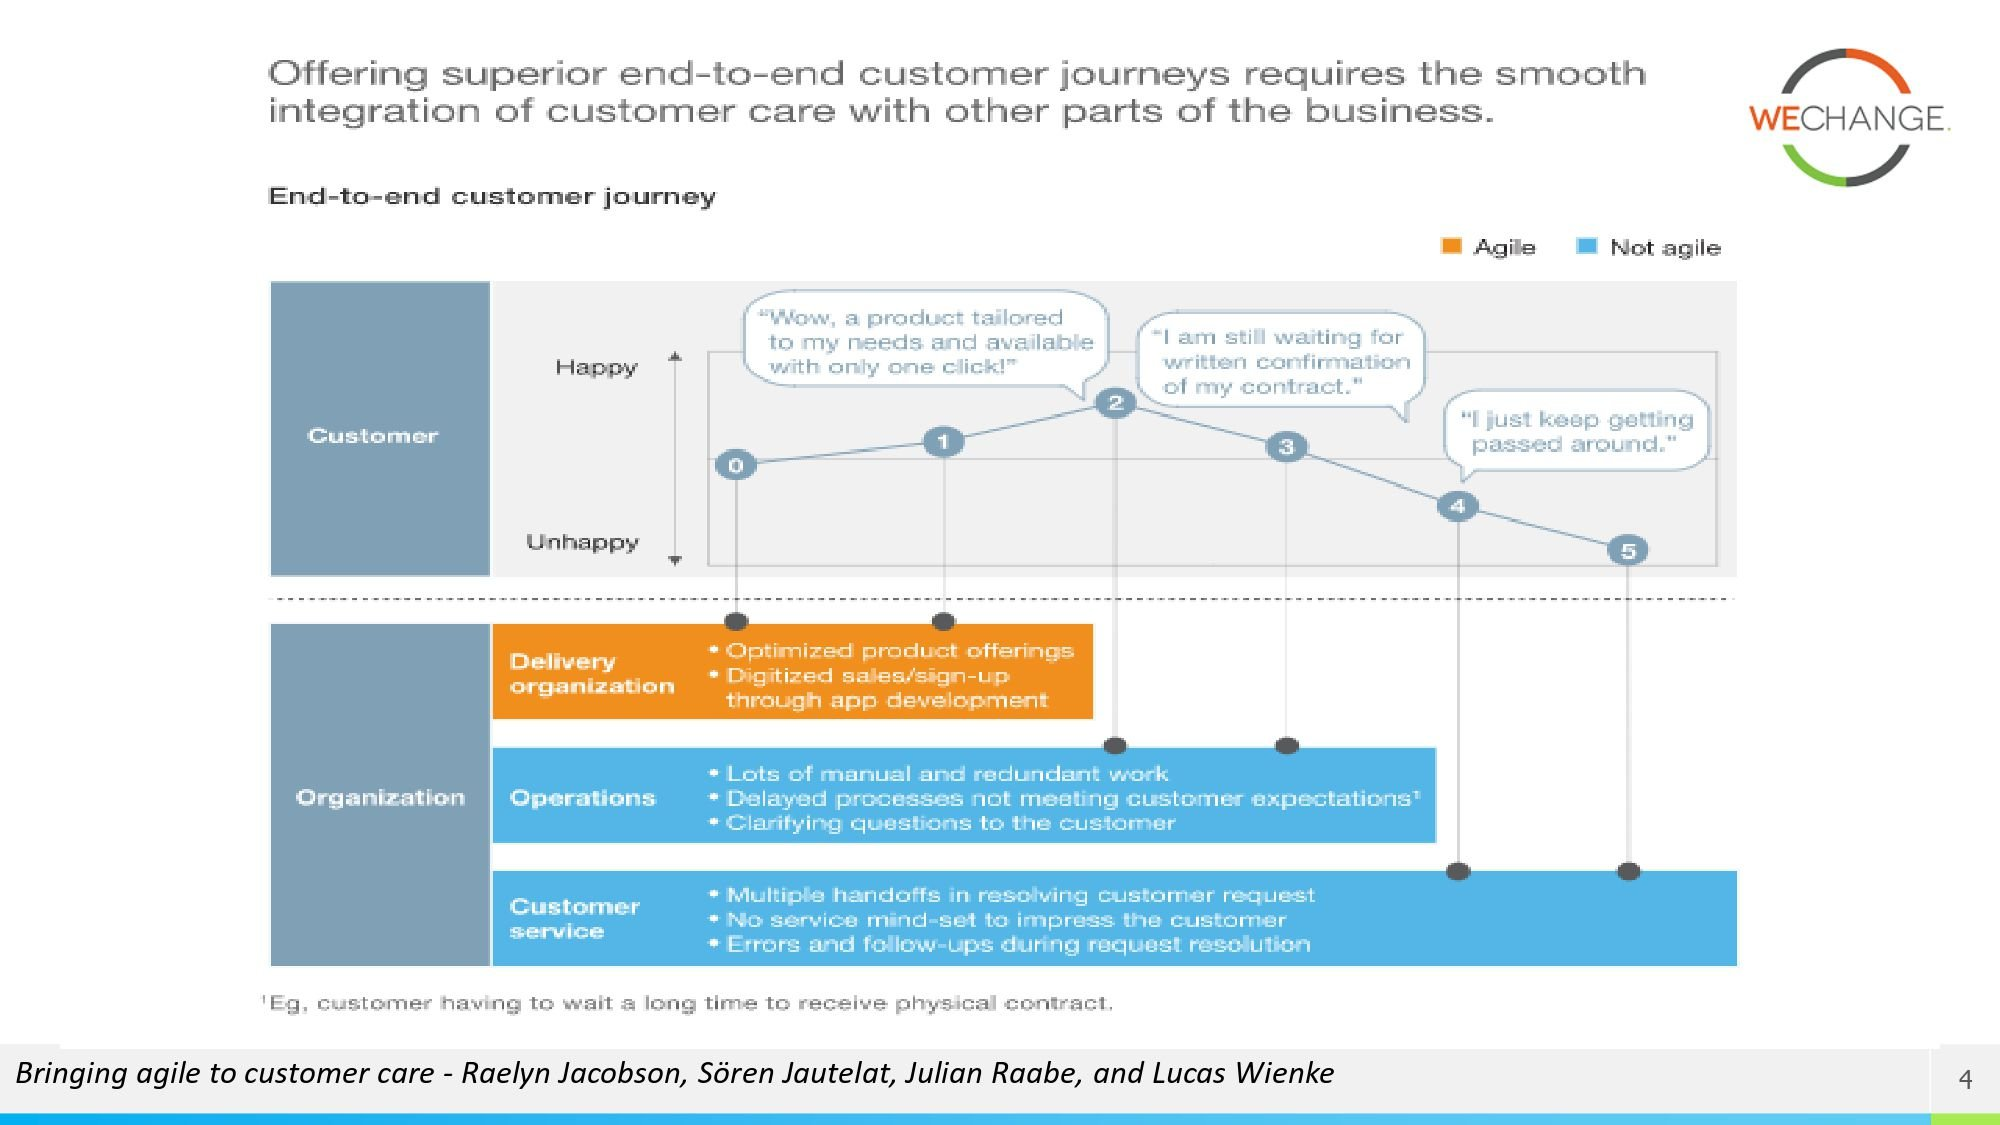 Operations agility page 0005 compressed Being & Doing Agile in Customer oriented care and Operations Organizations